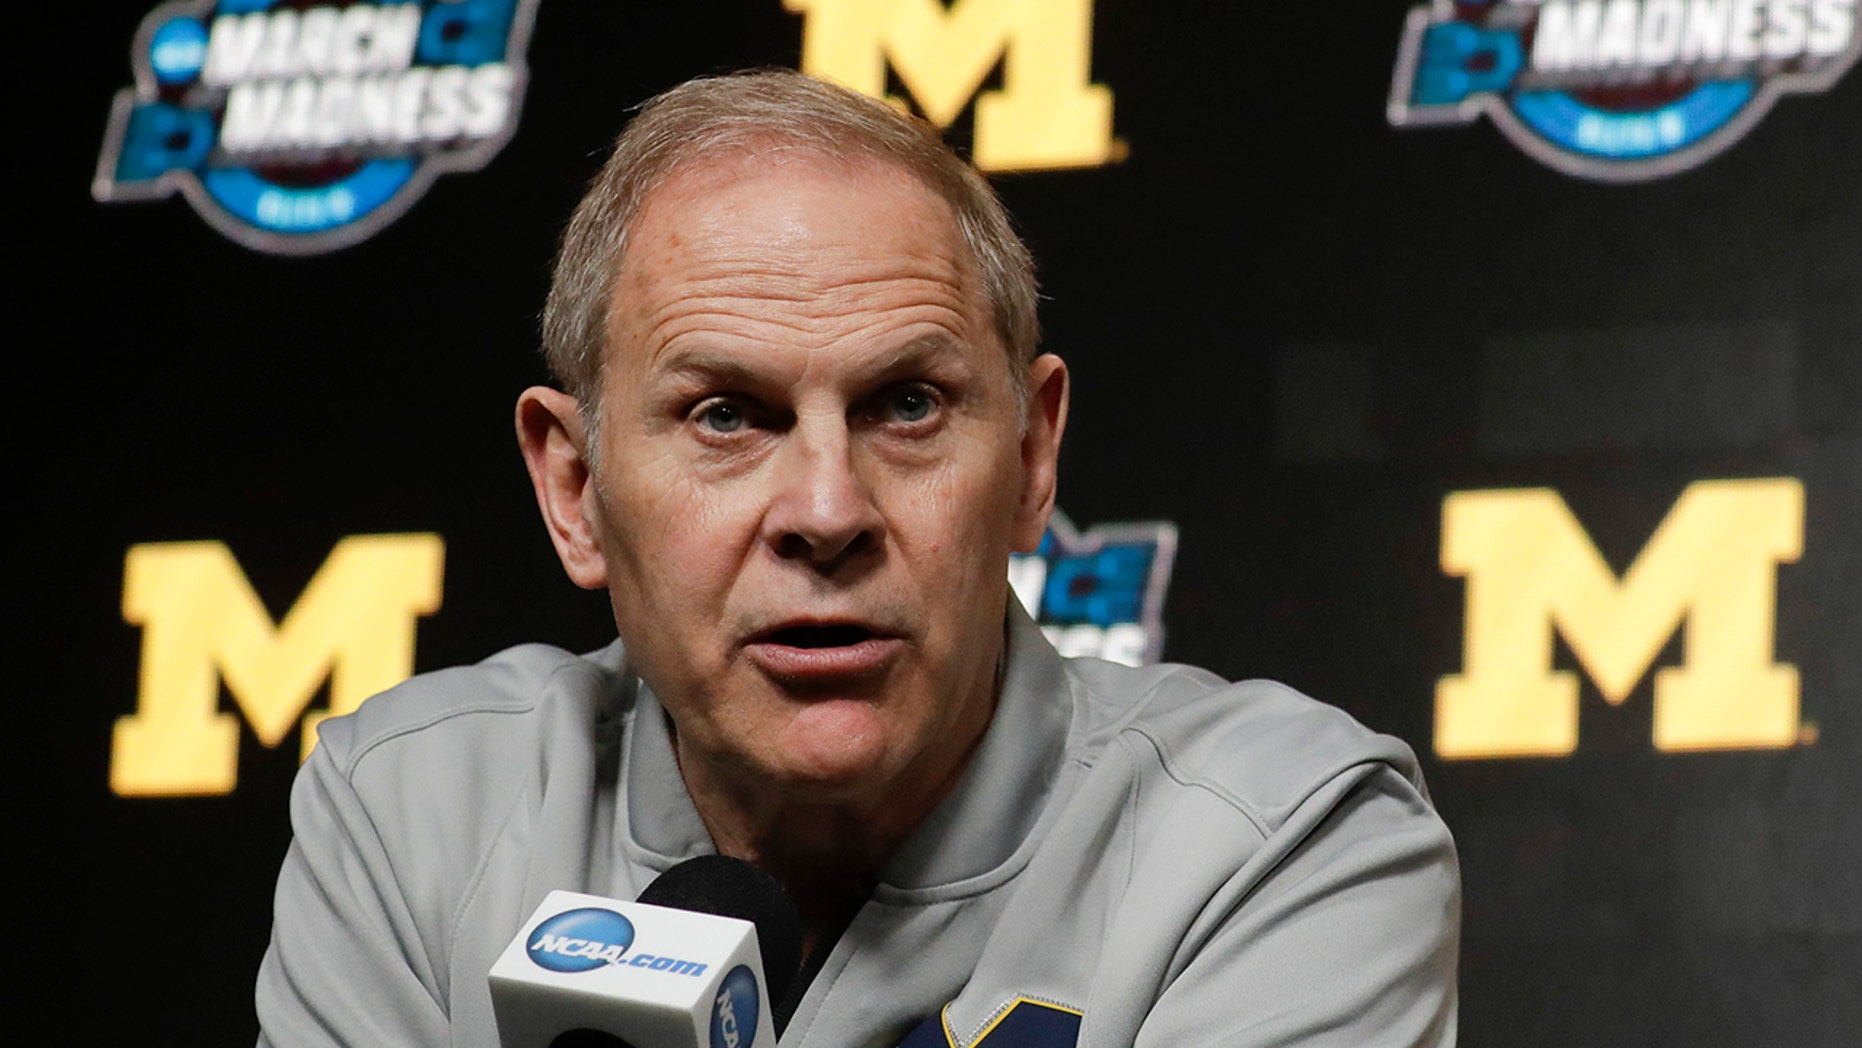 FILE - In this March 27, 2019 file photo Michigan head coach John Beilein speaks during a news conference at the NCAA college basketball tournament in Anaheim, Calif. (AP Photo/Chris Carlson, file)